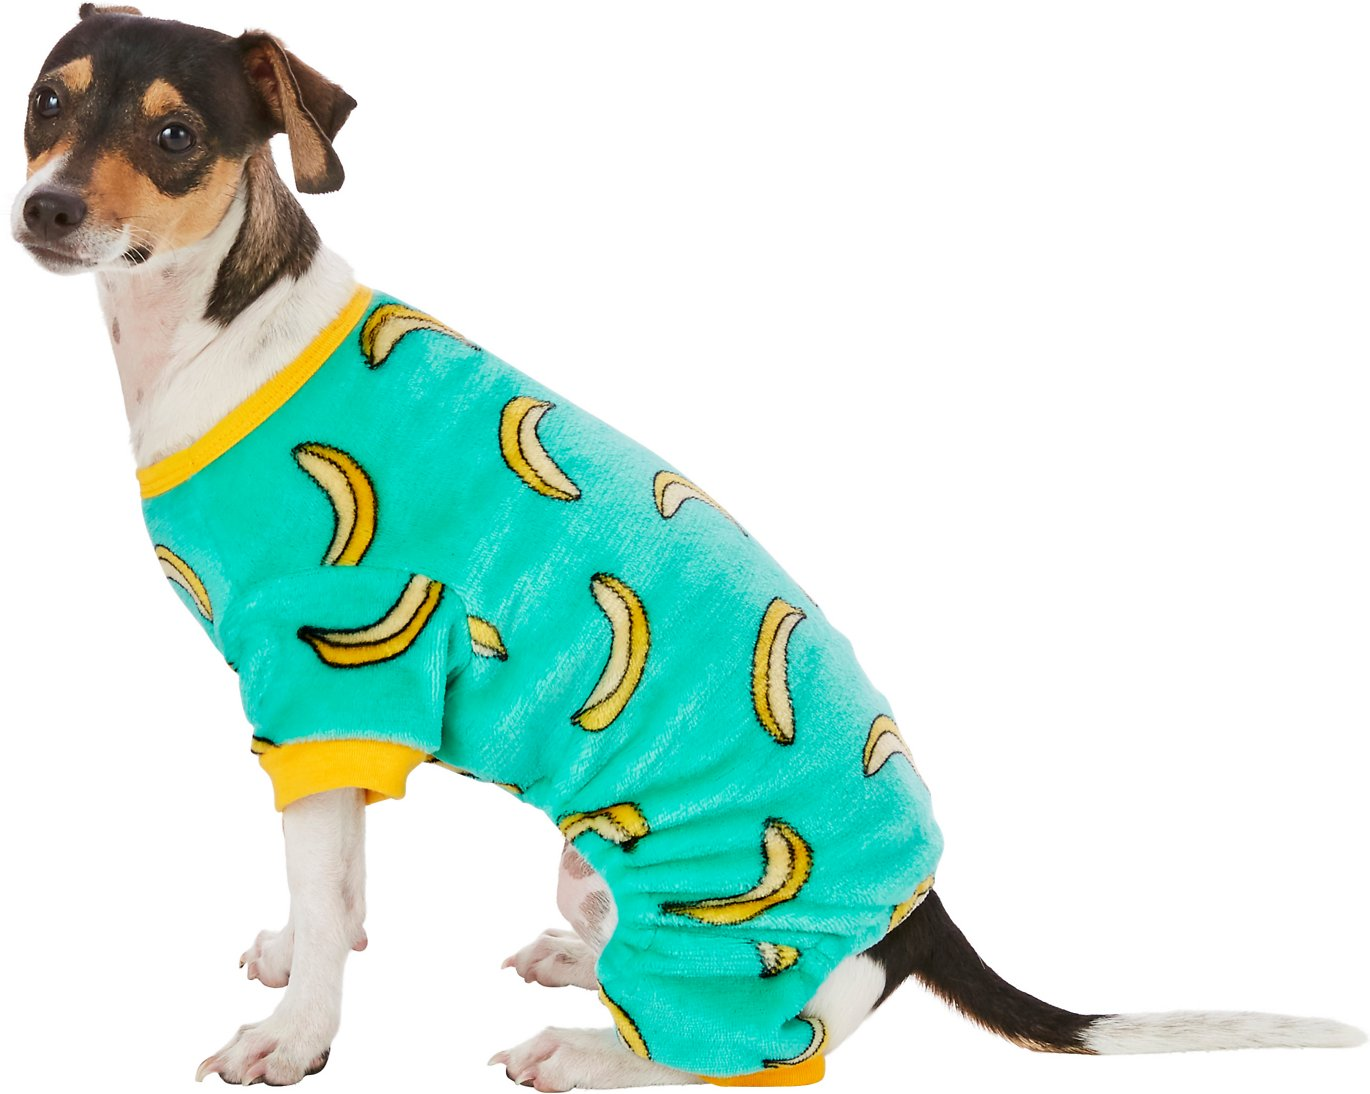 ba20485cd Frisco Banana Print Dog   Cat Cozy Fleece PJs